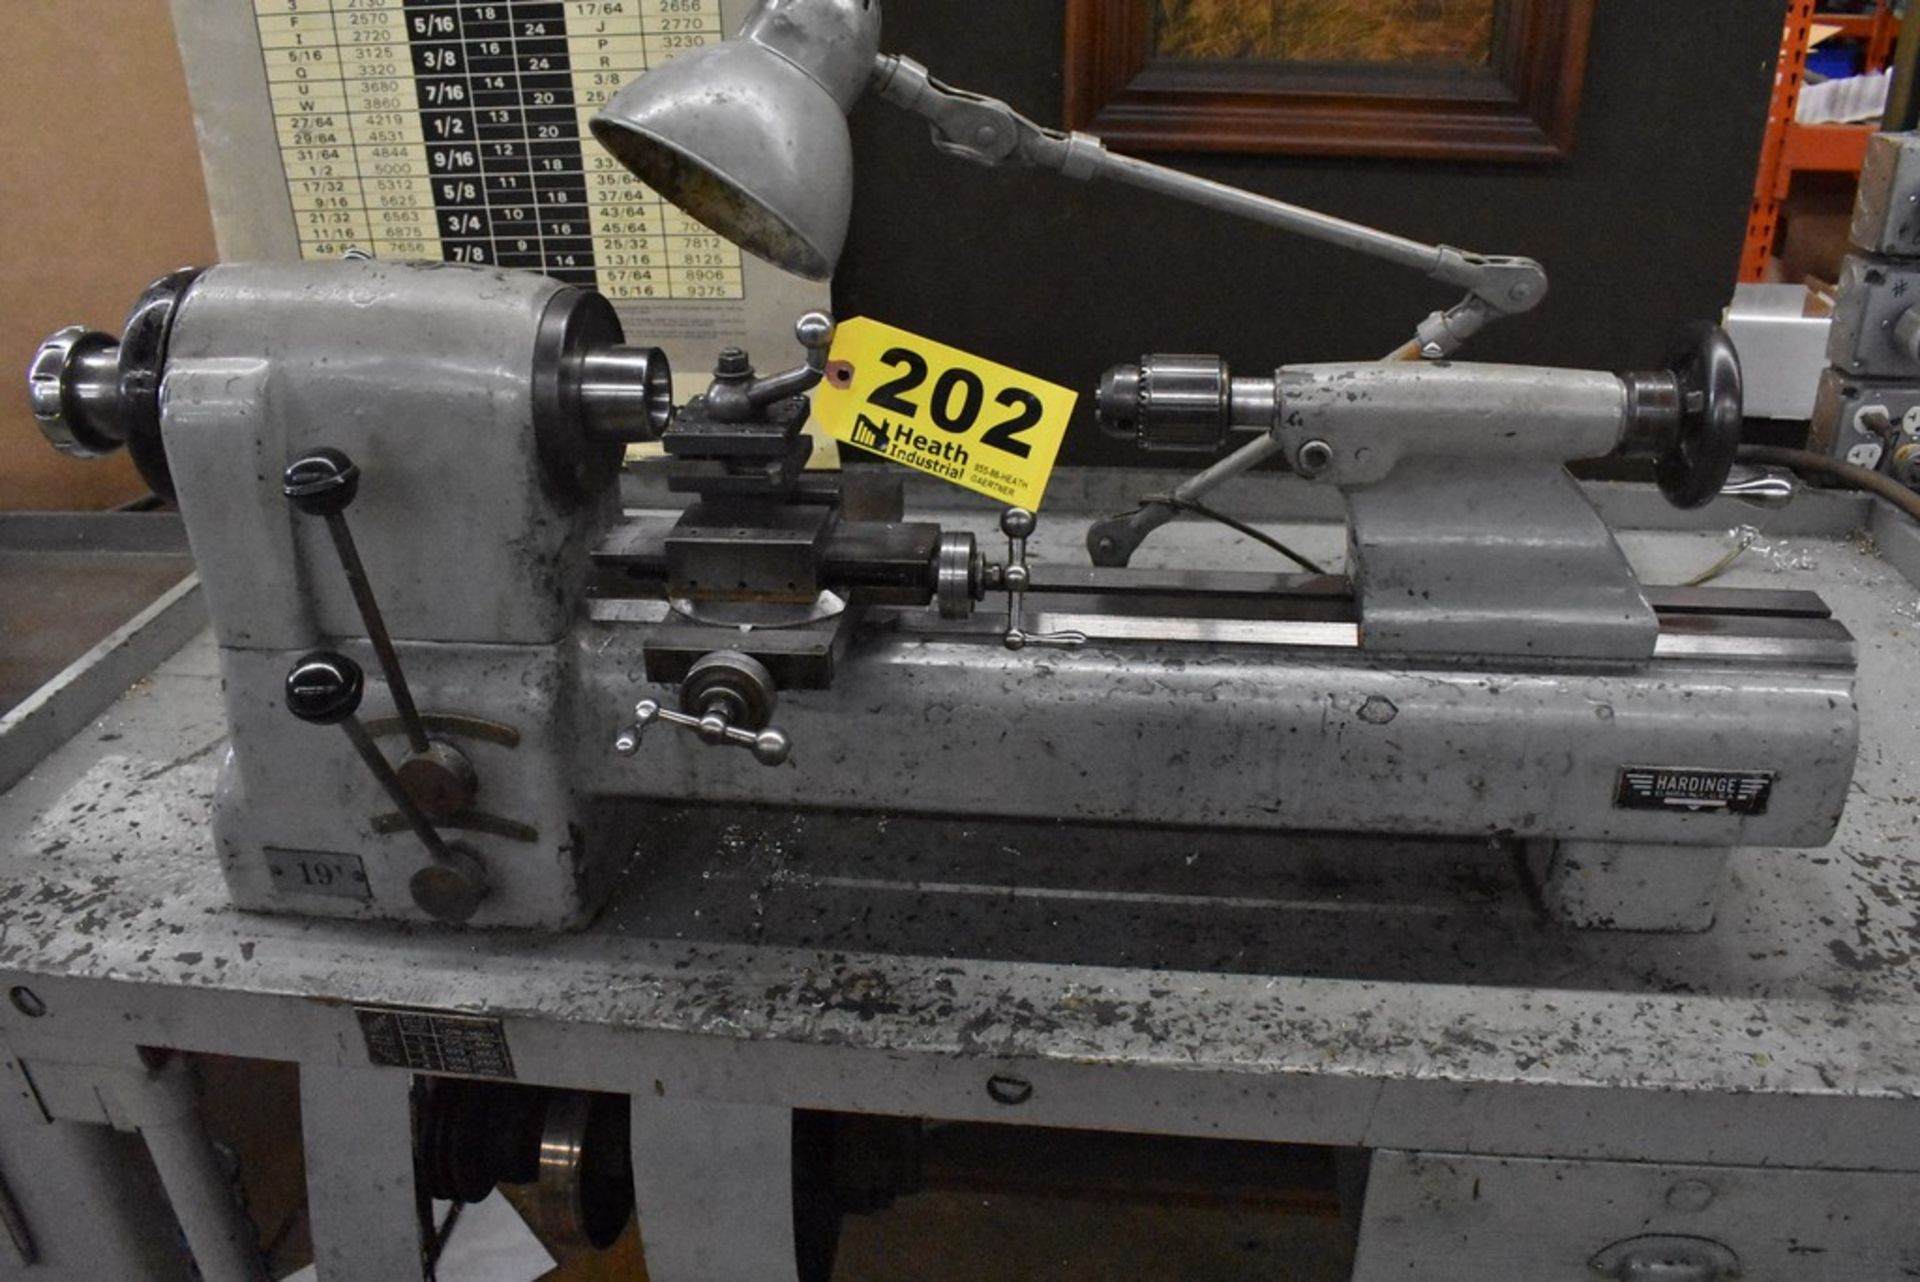 HARDINGE NO. 59 PRECISION SPLIT BED LATHE, S/N 59-16741, WITH SWIVEL COMPOUND, MOUNTED ON TABLE - Image 7 of 7